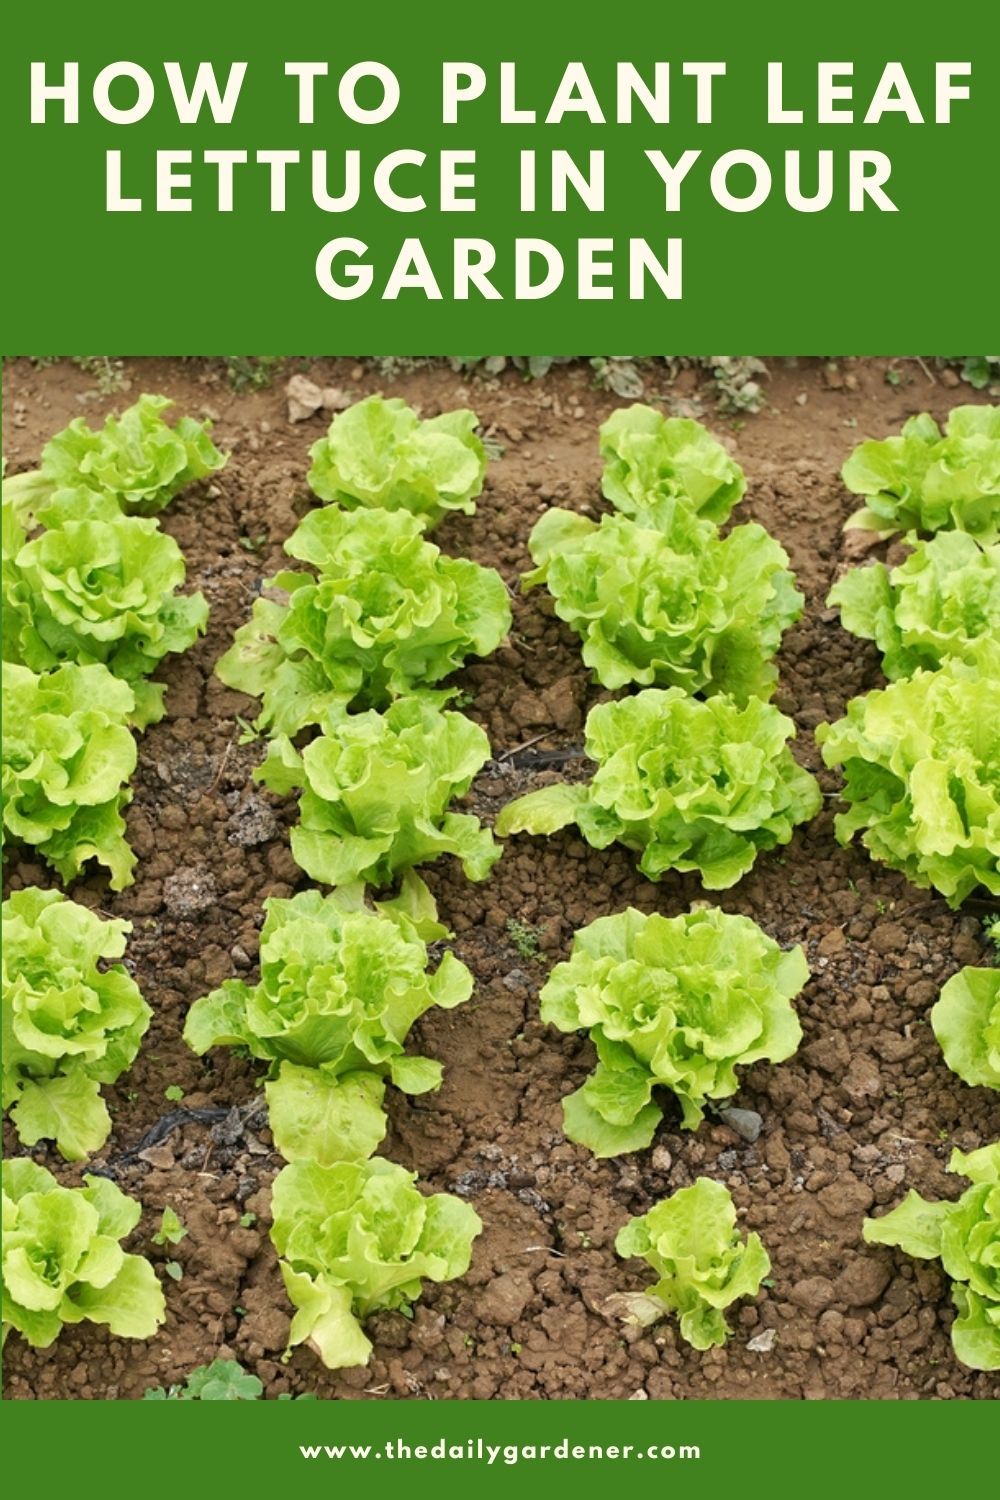 How to Plant Leaf Lettuce in Your Garden (Ticks to Care!) 1